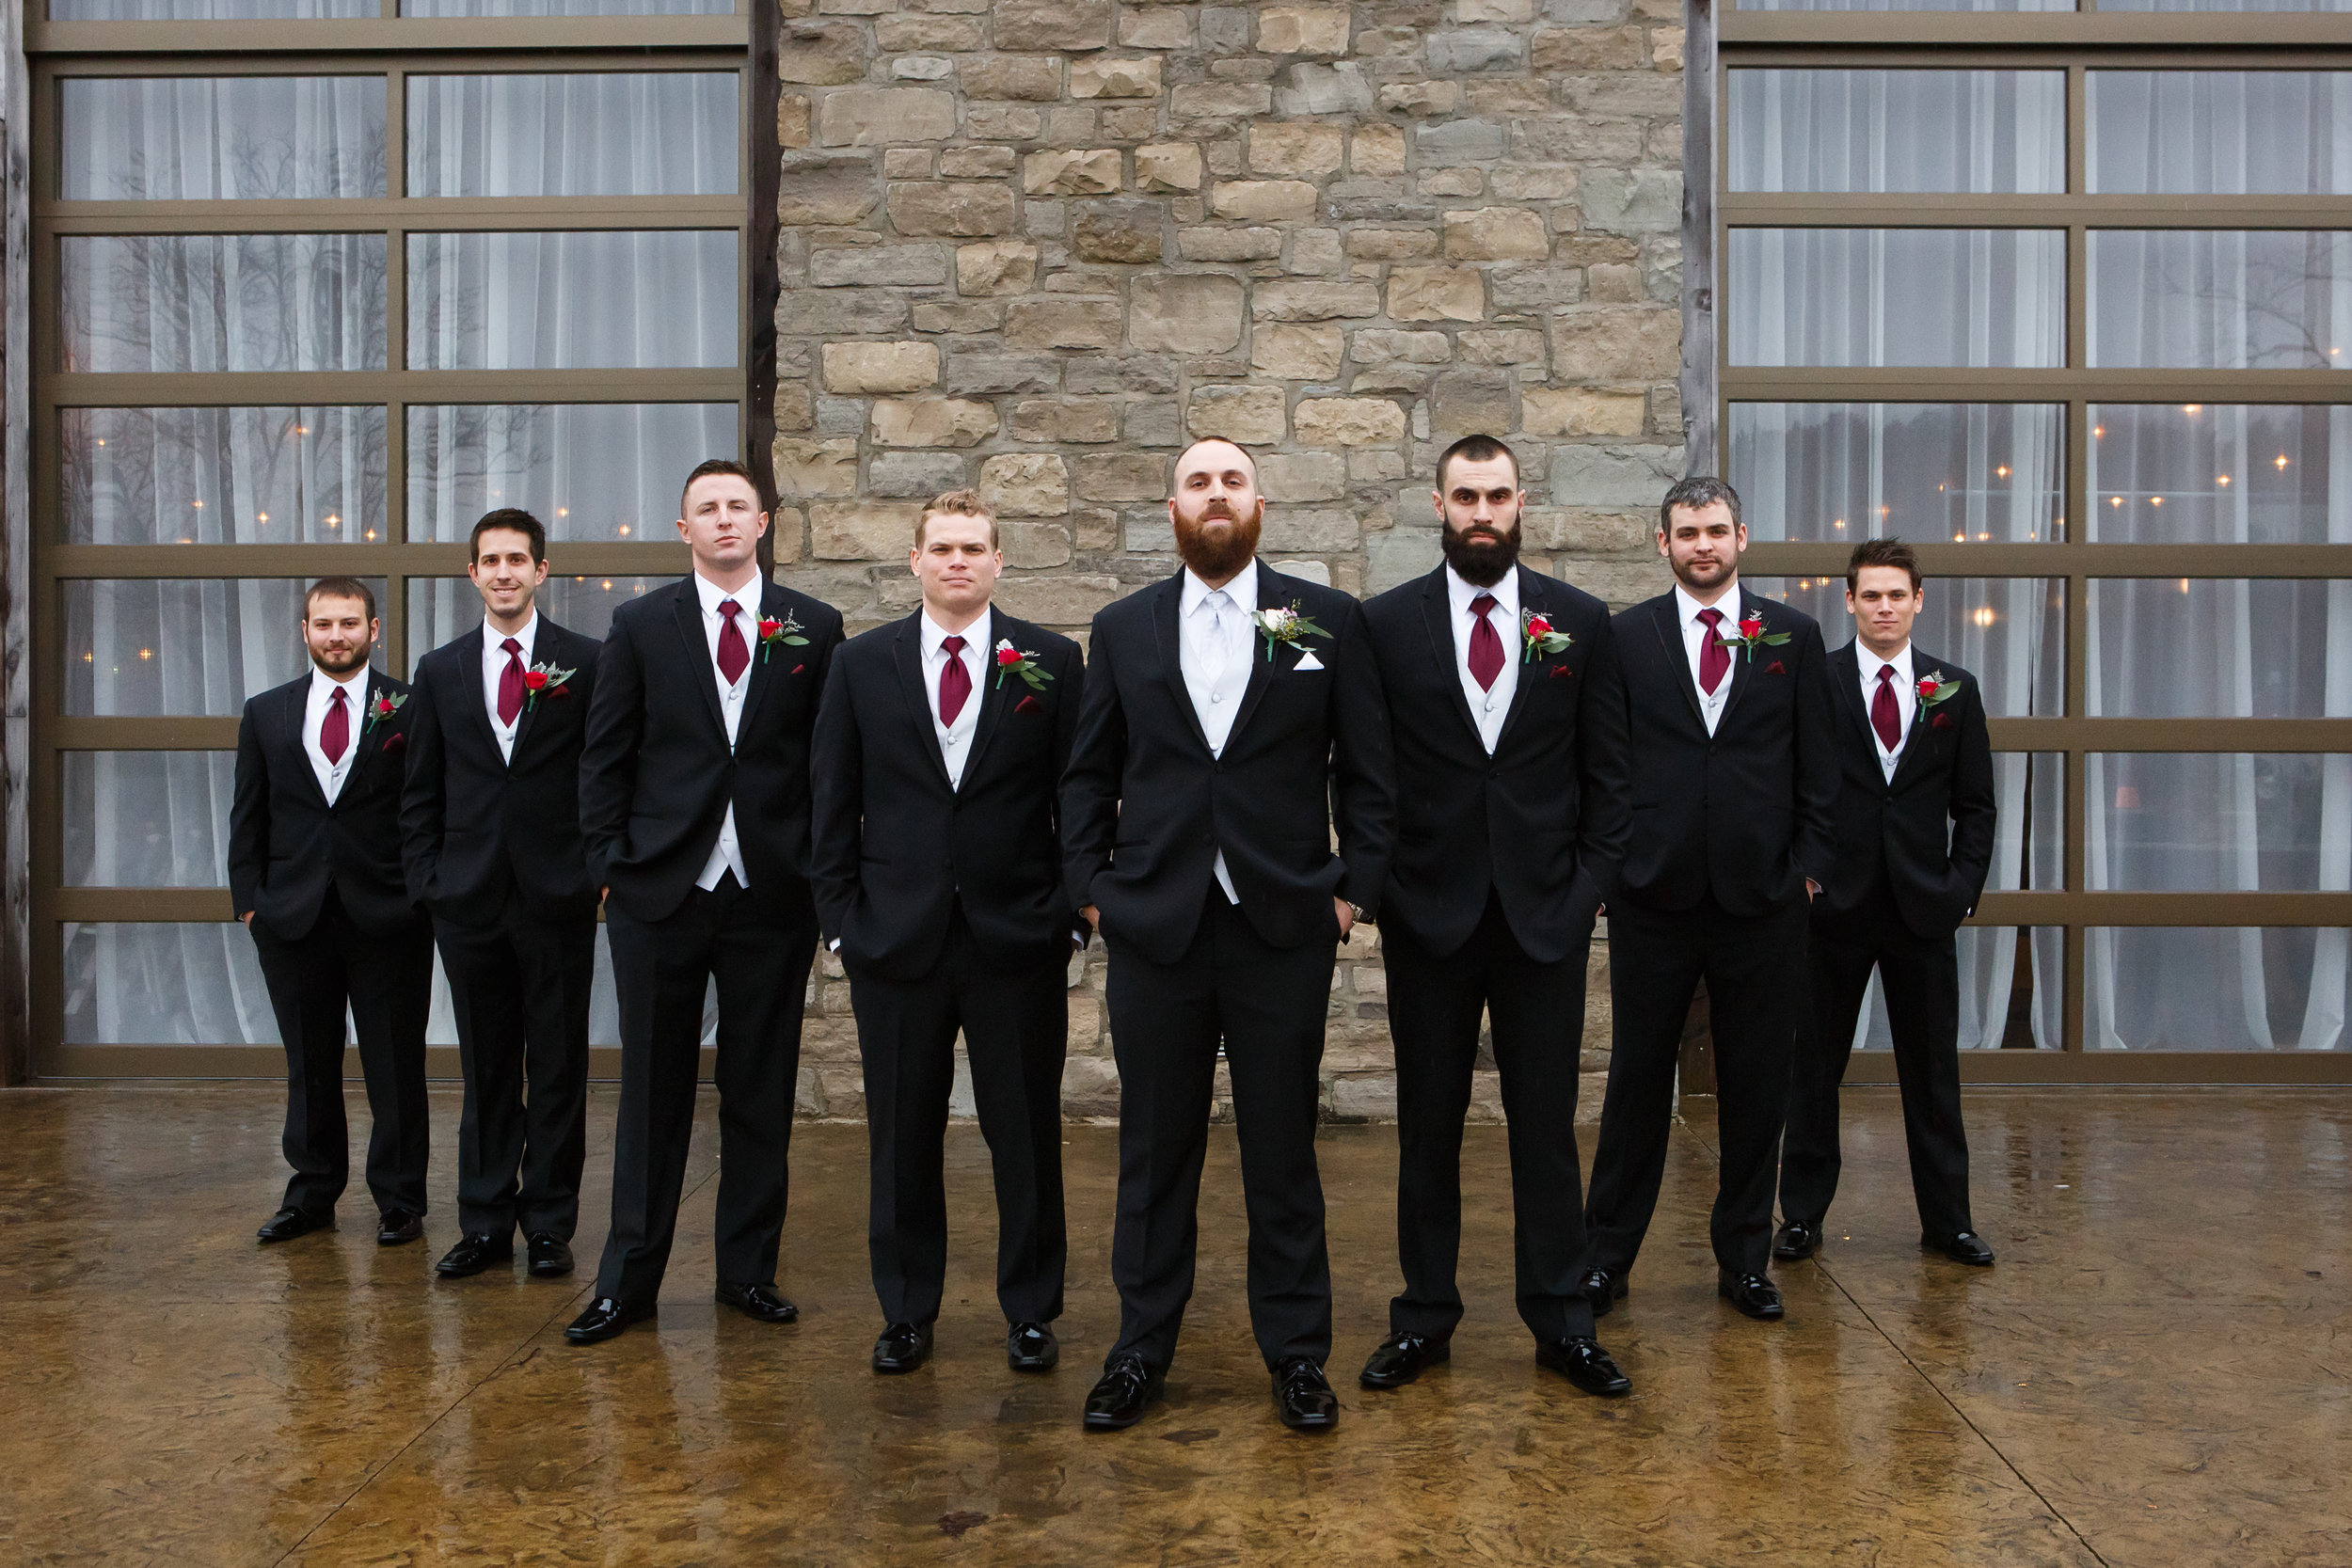 Reds and Romance Infuse a Midwest February Wedding